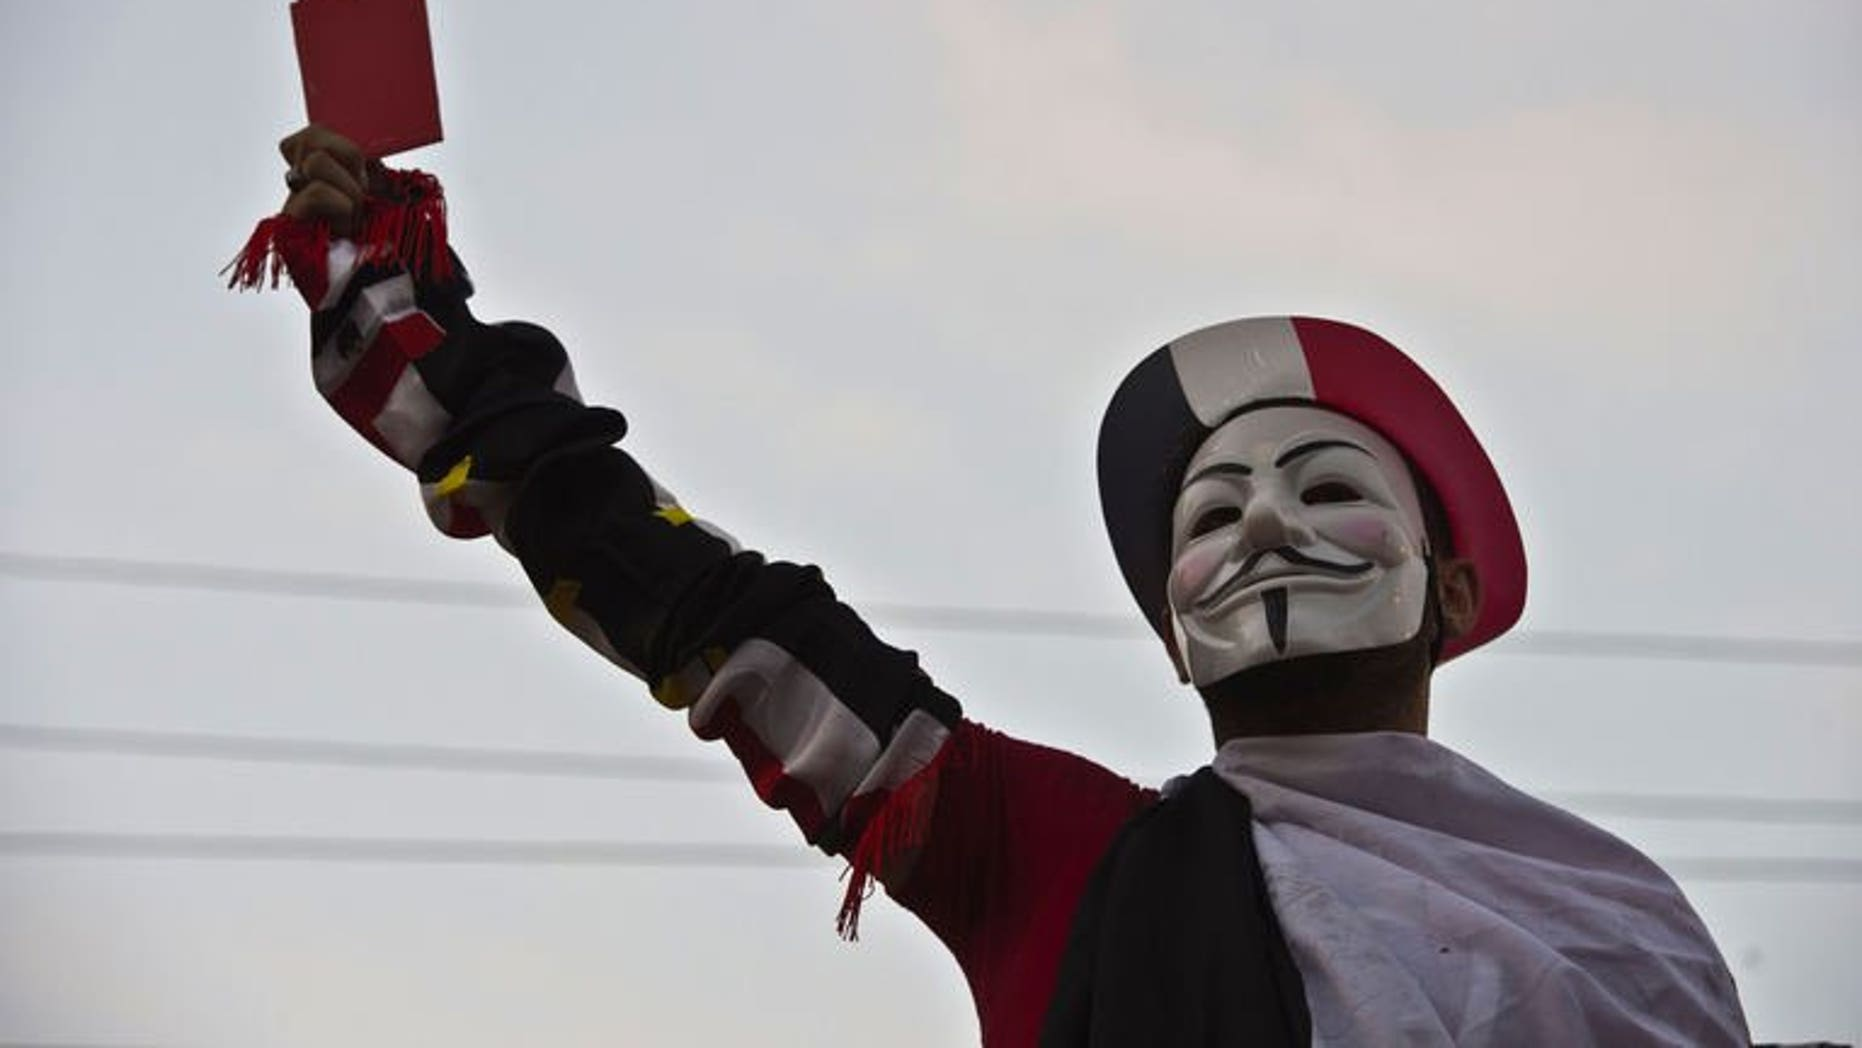 A protester wearing a Guy Fawkes mask holds up a red card as thousands of Egyptian demonstrators gather outside the presidential palace in Cairo, on July 1, 2013. US President Barack Obama has called President Mohamed Morsi to warn him that the voices of all Egyptians must be heard as a political crisis escalates, the White House said.